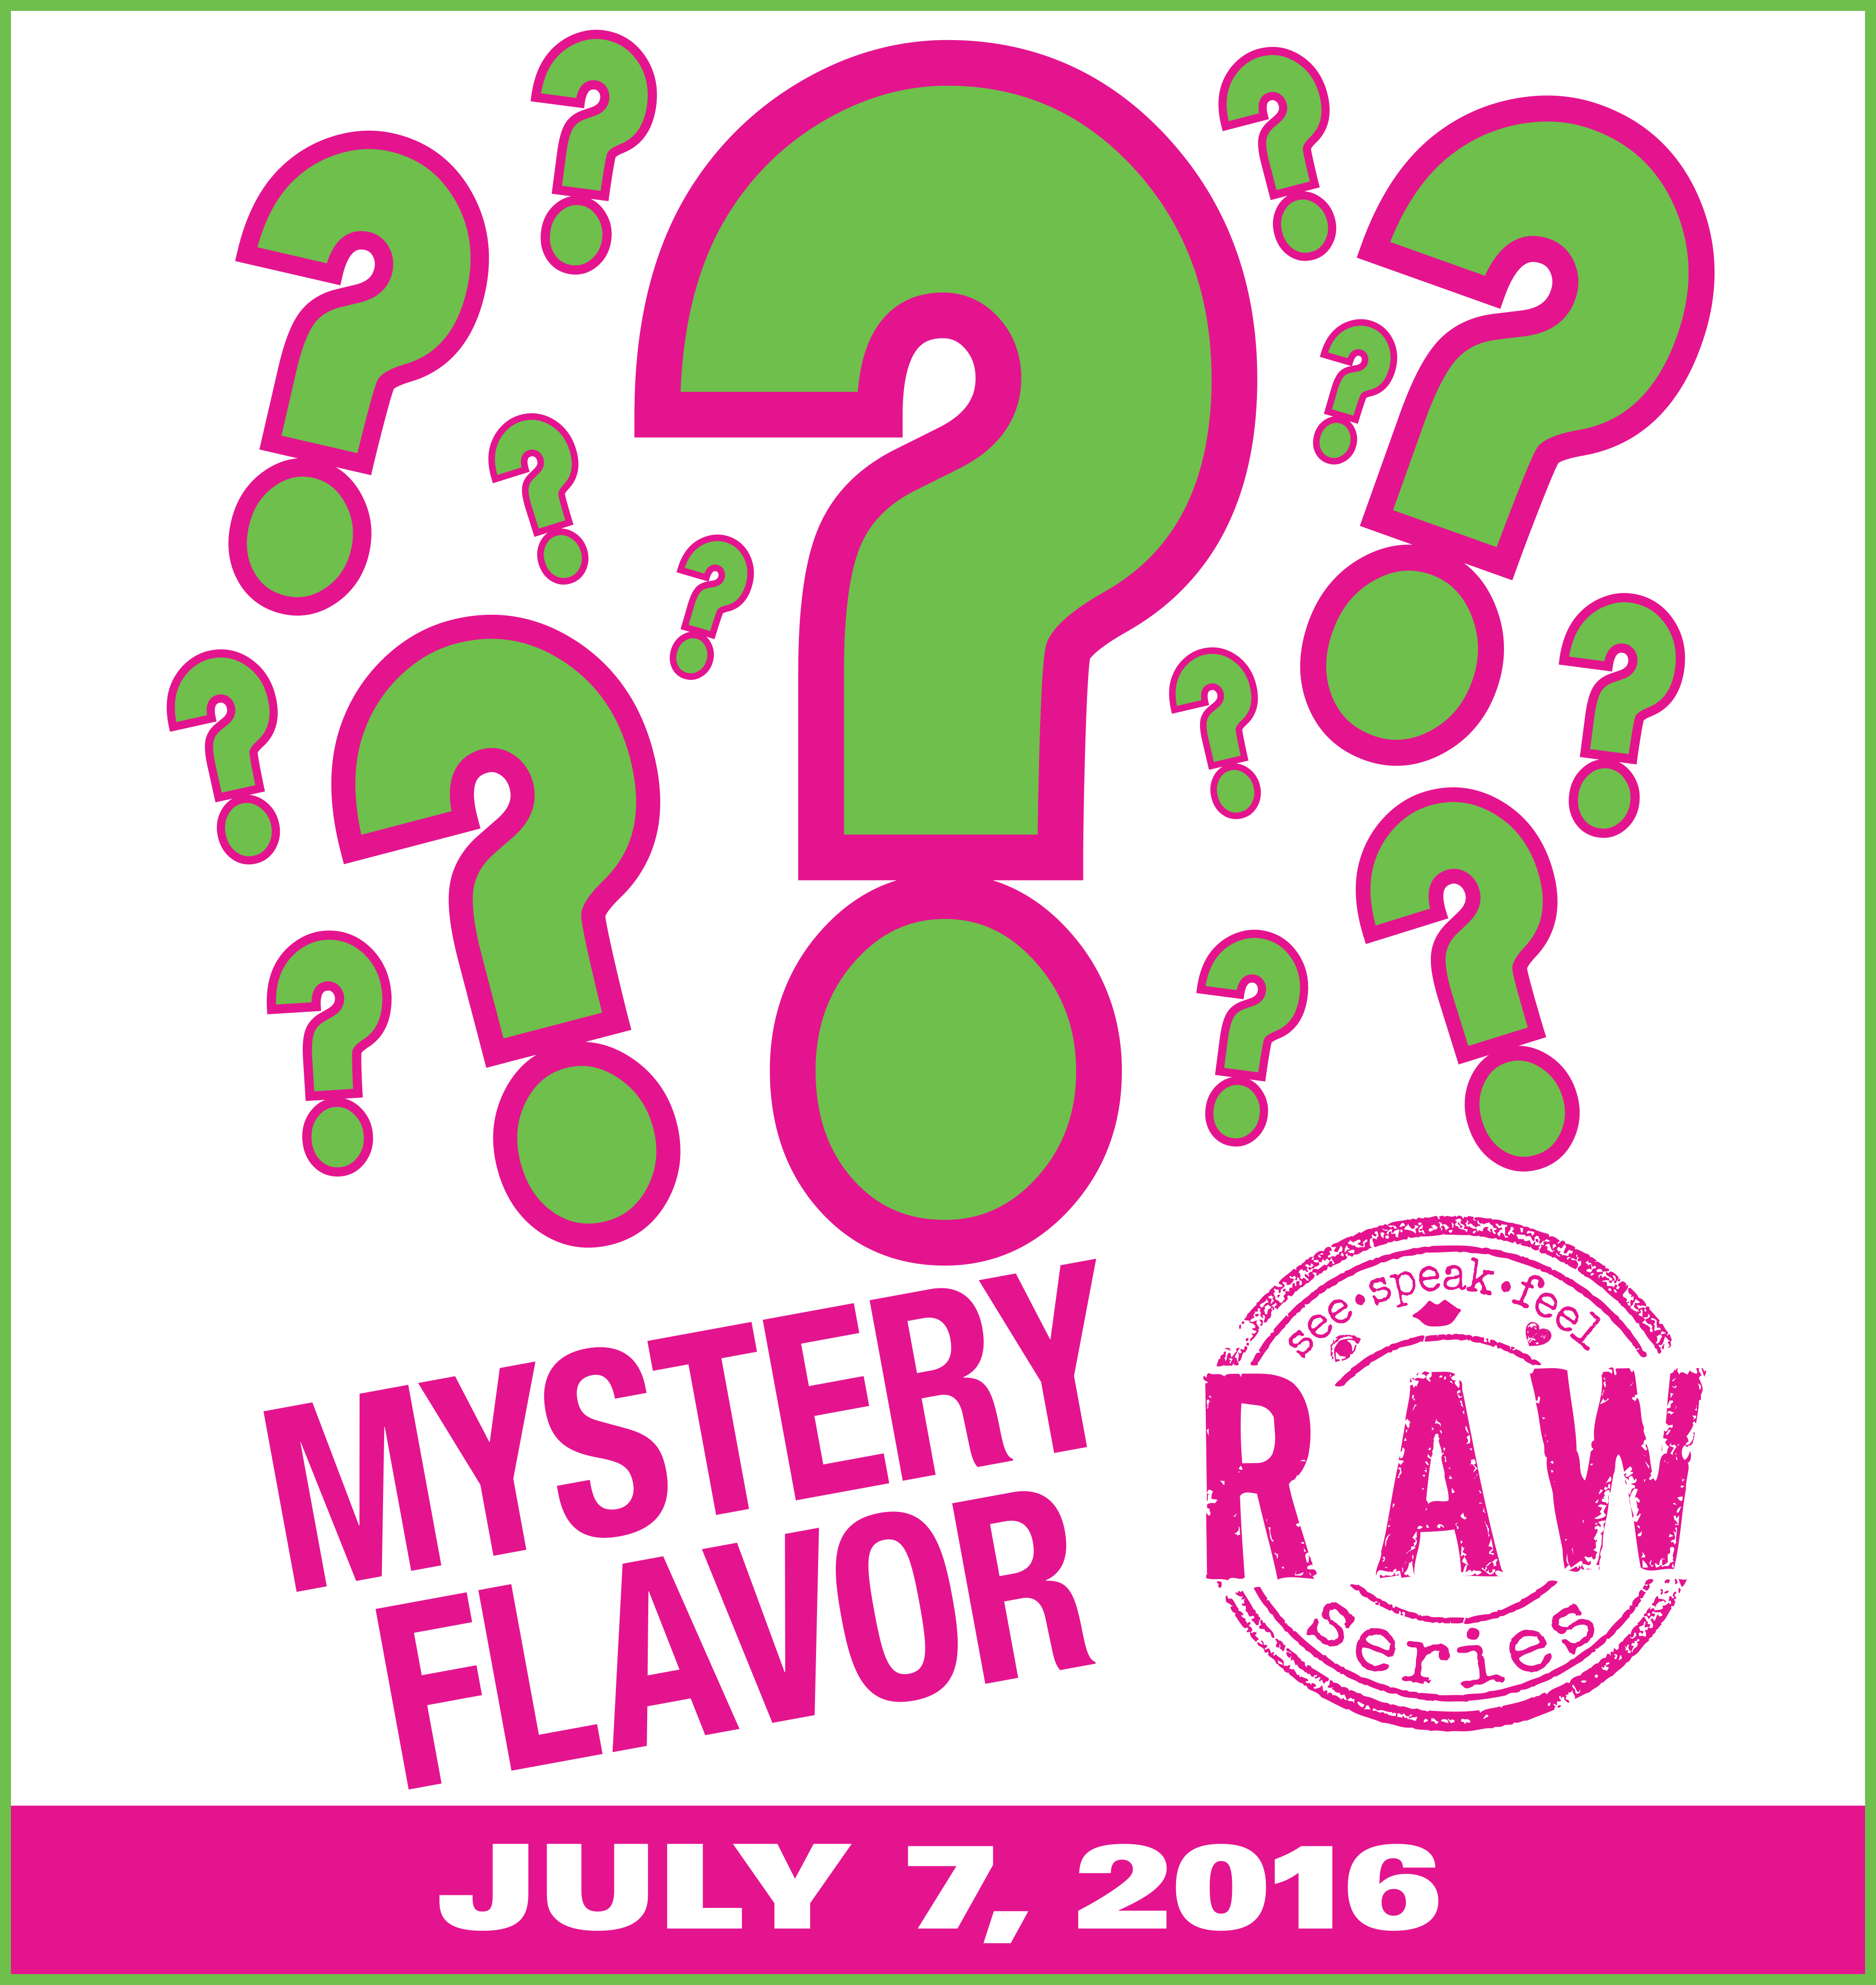 RAW Series: Mystery Flavor